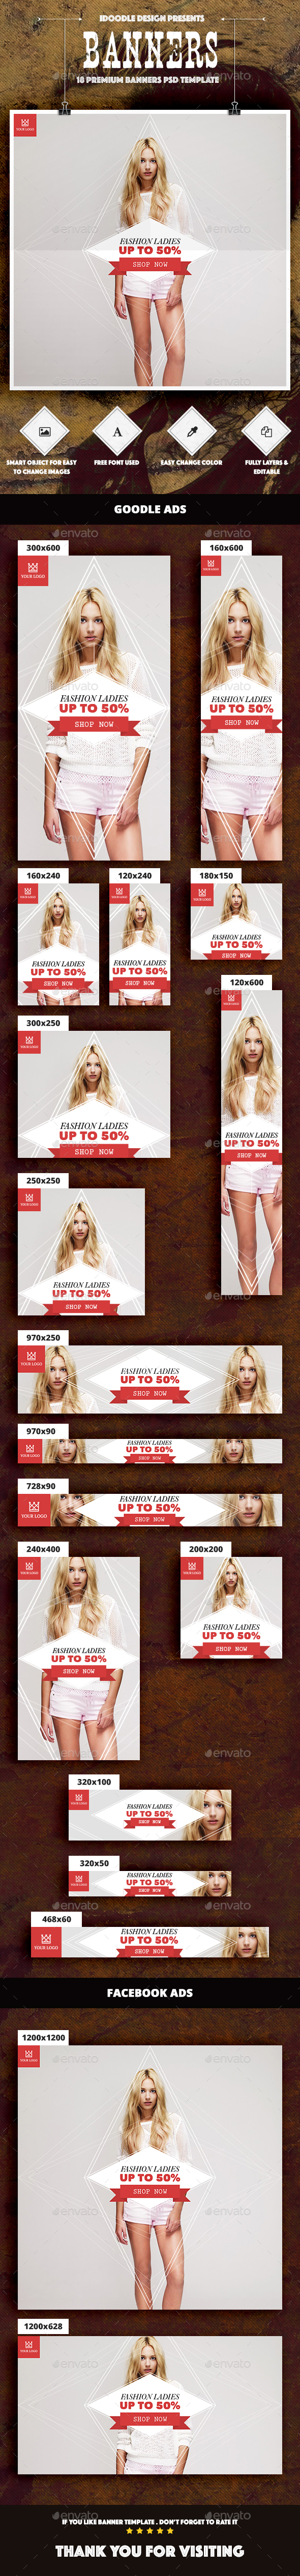 Fashion Banners Ad - Banners & Ads Web Elements